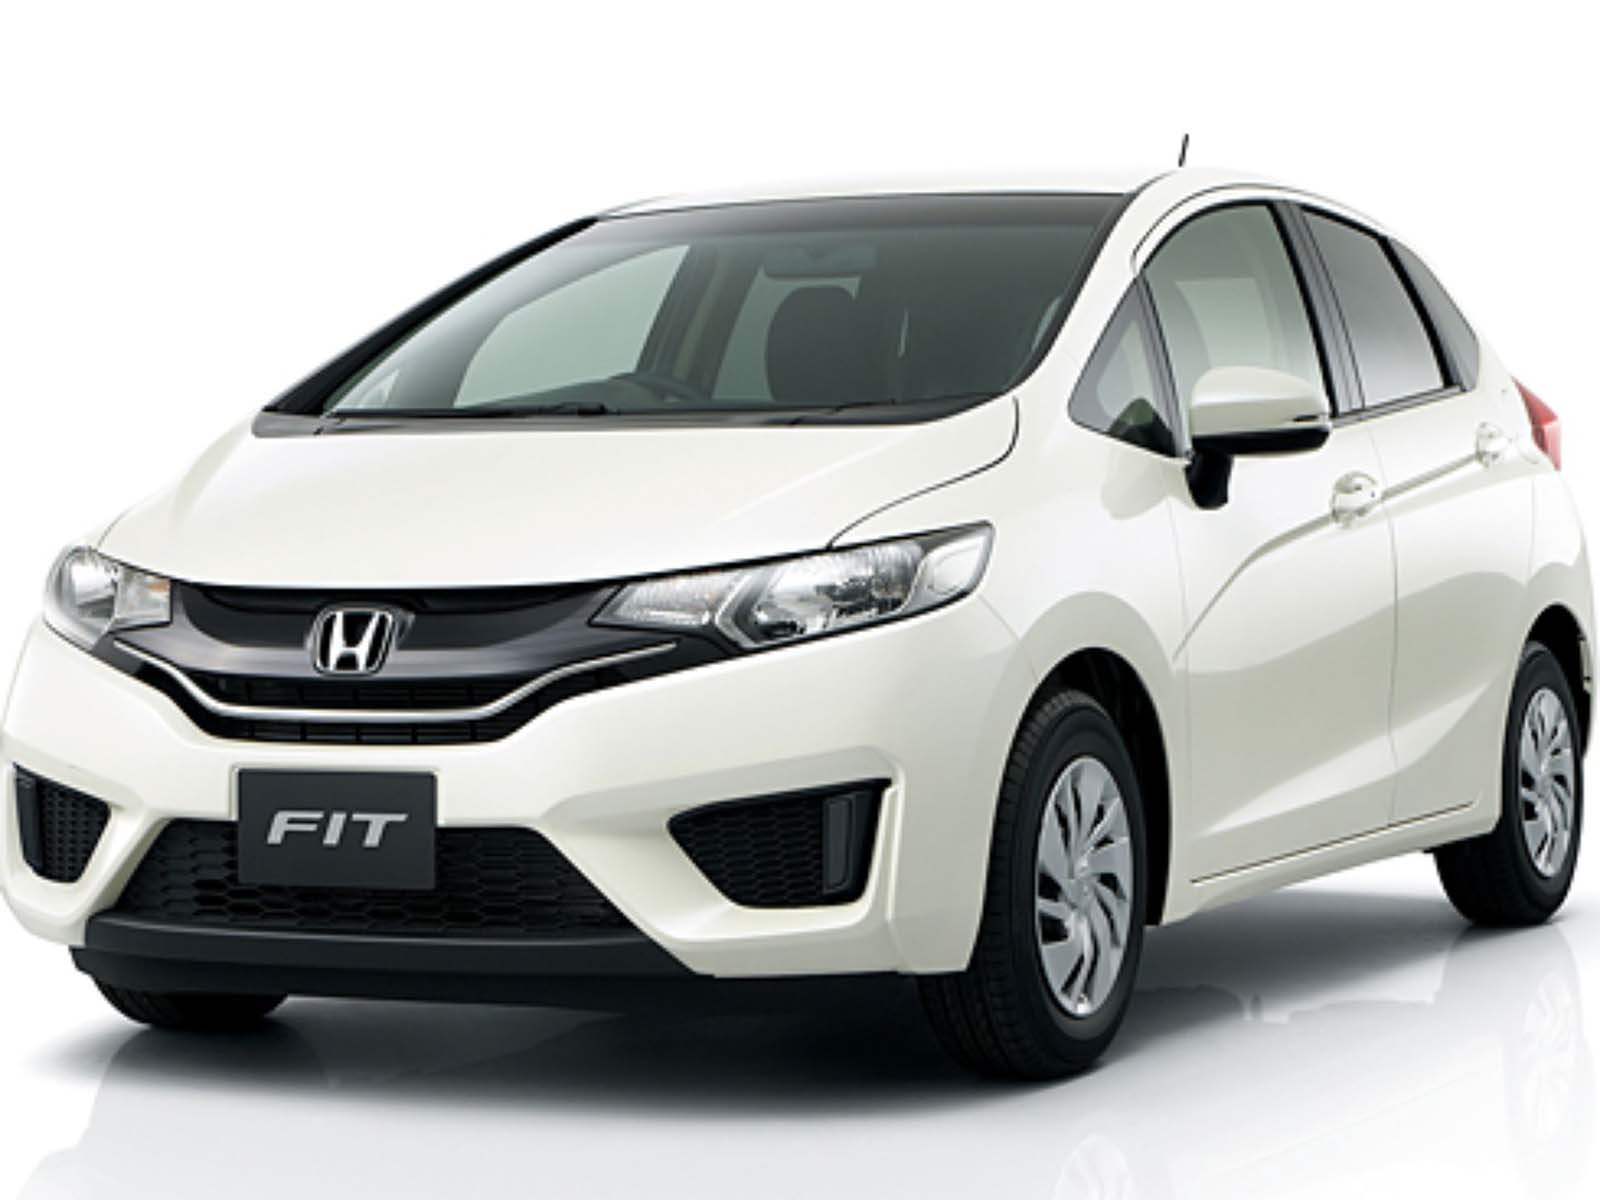 Honda Fit 2014 White